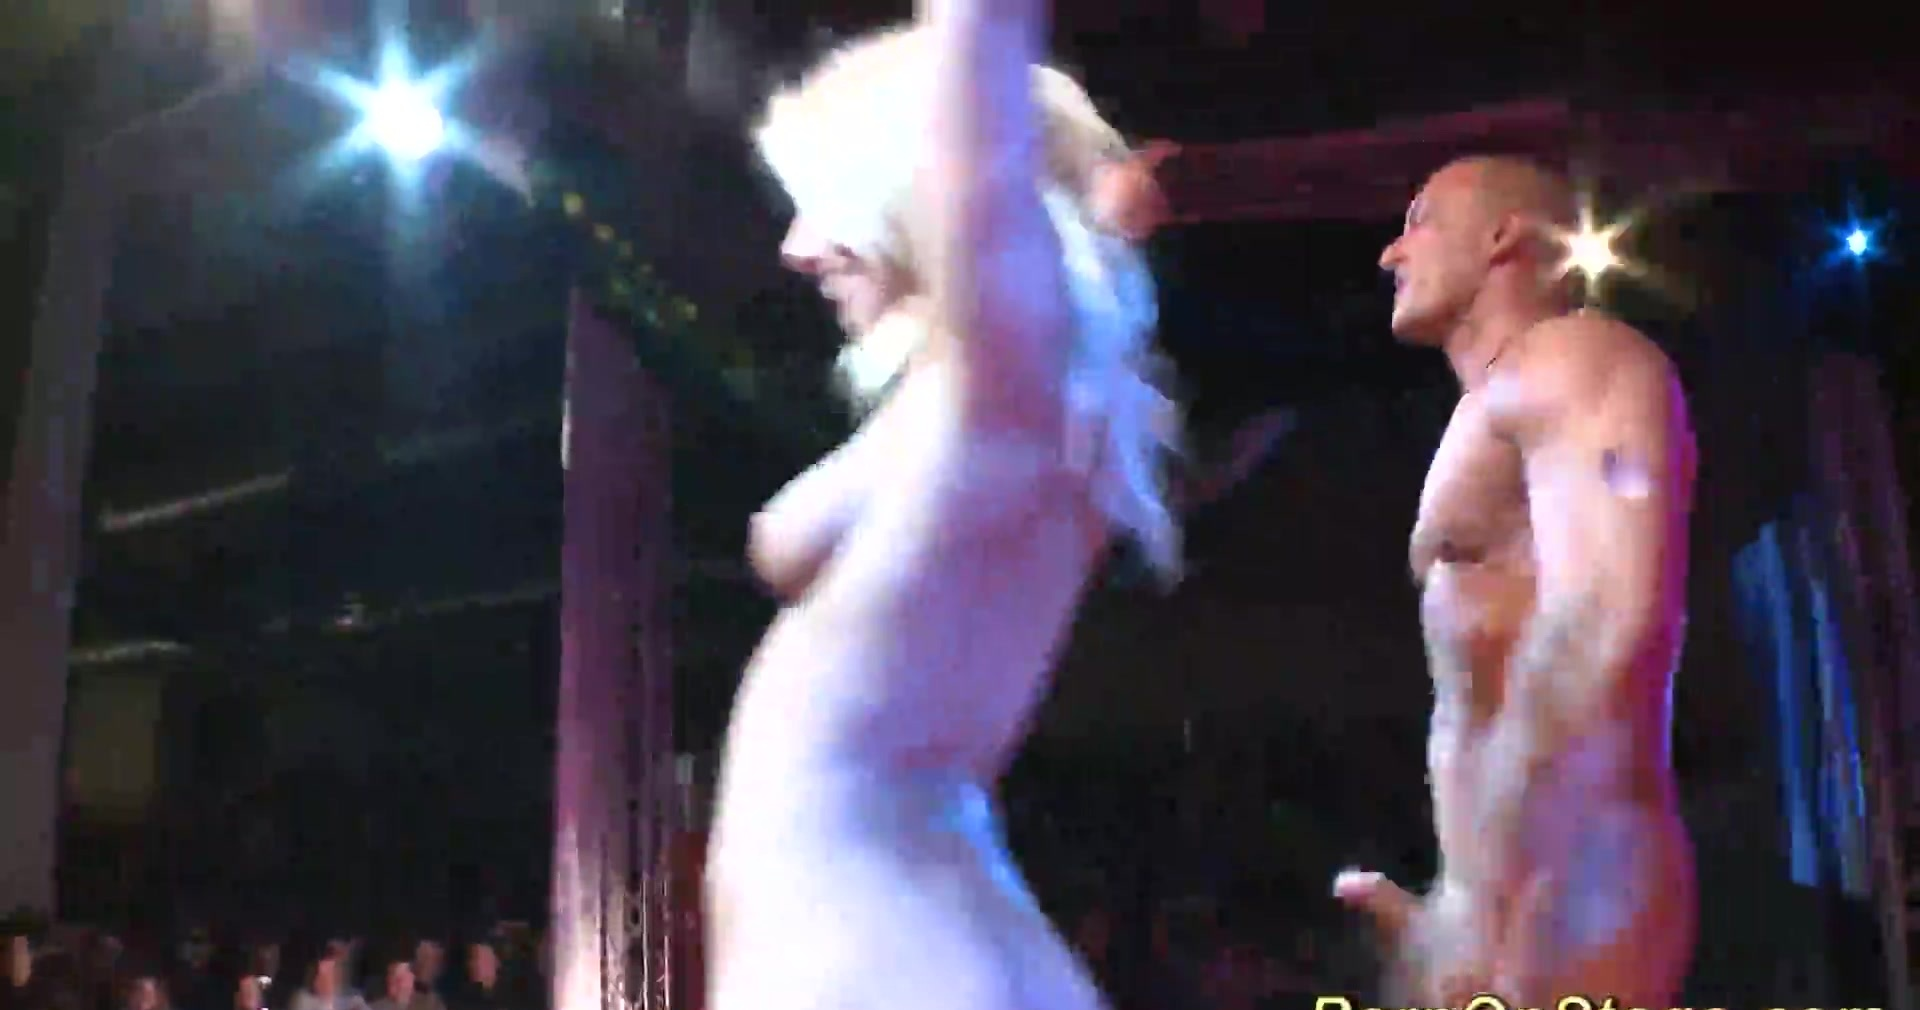 groupsex on public show stage